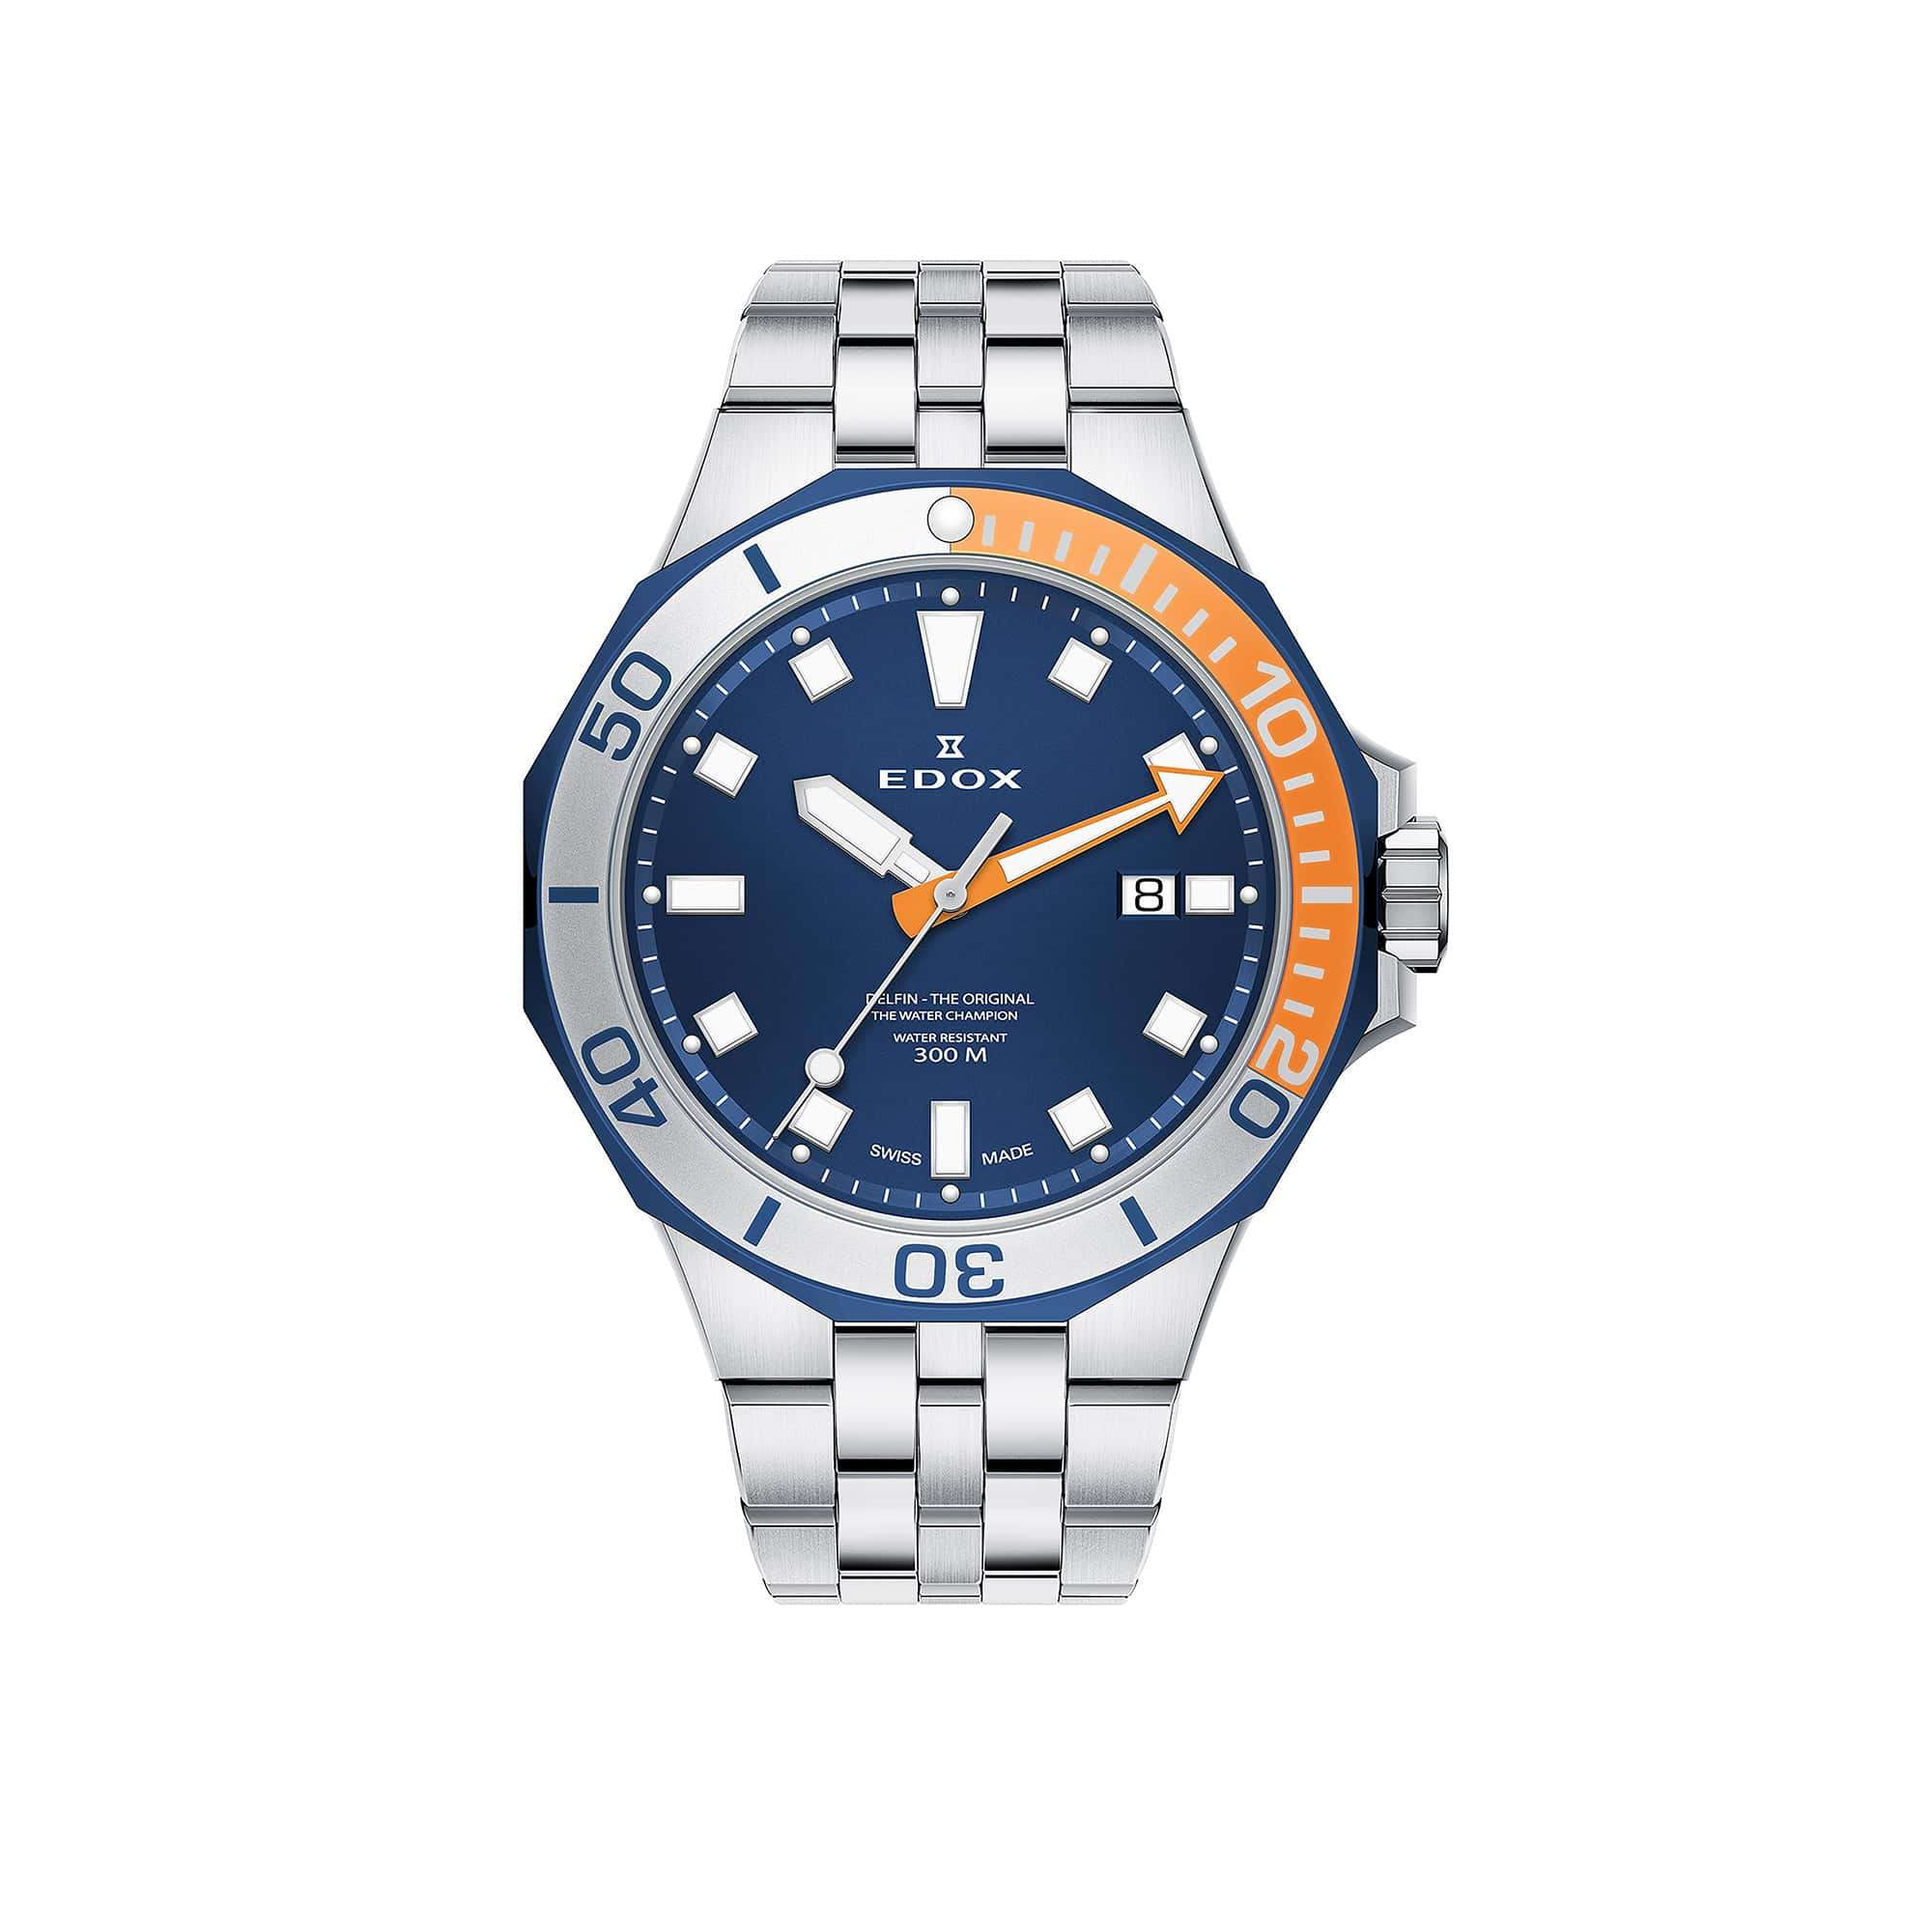 Edox Delfin Diver Date 53015-357BUOM-BUIN – Swiss Time